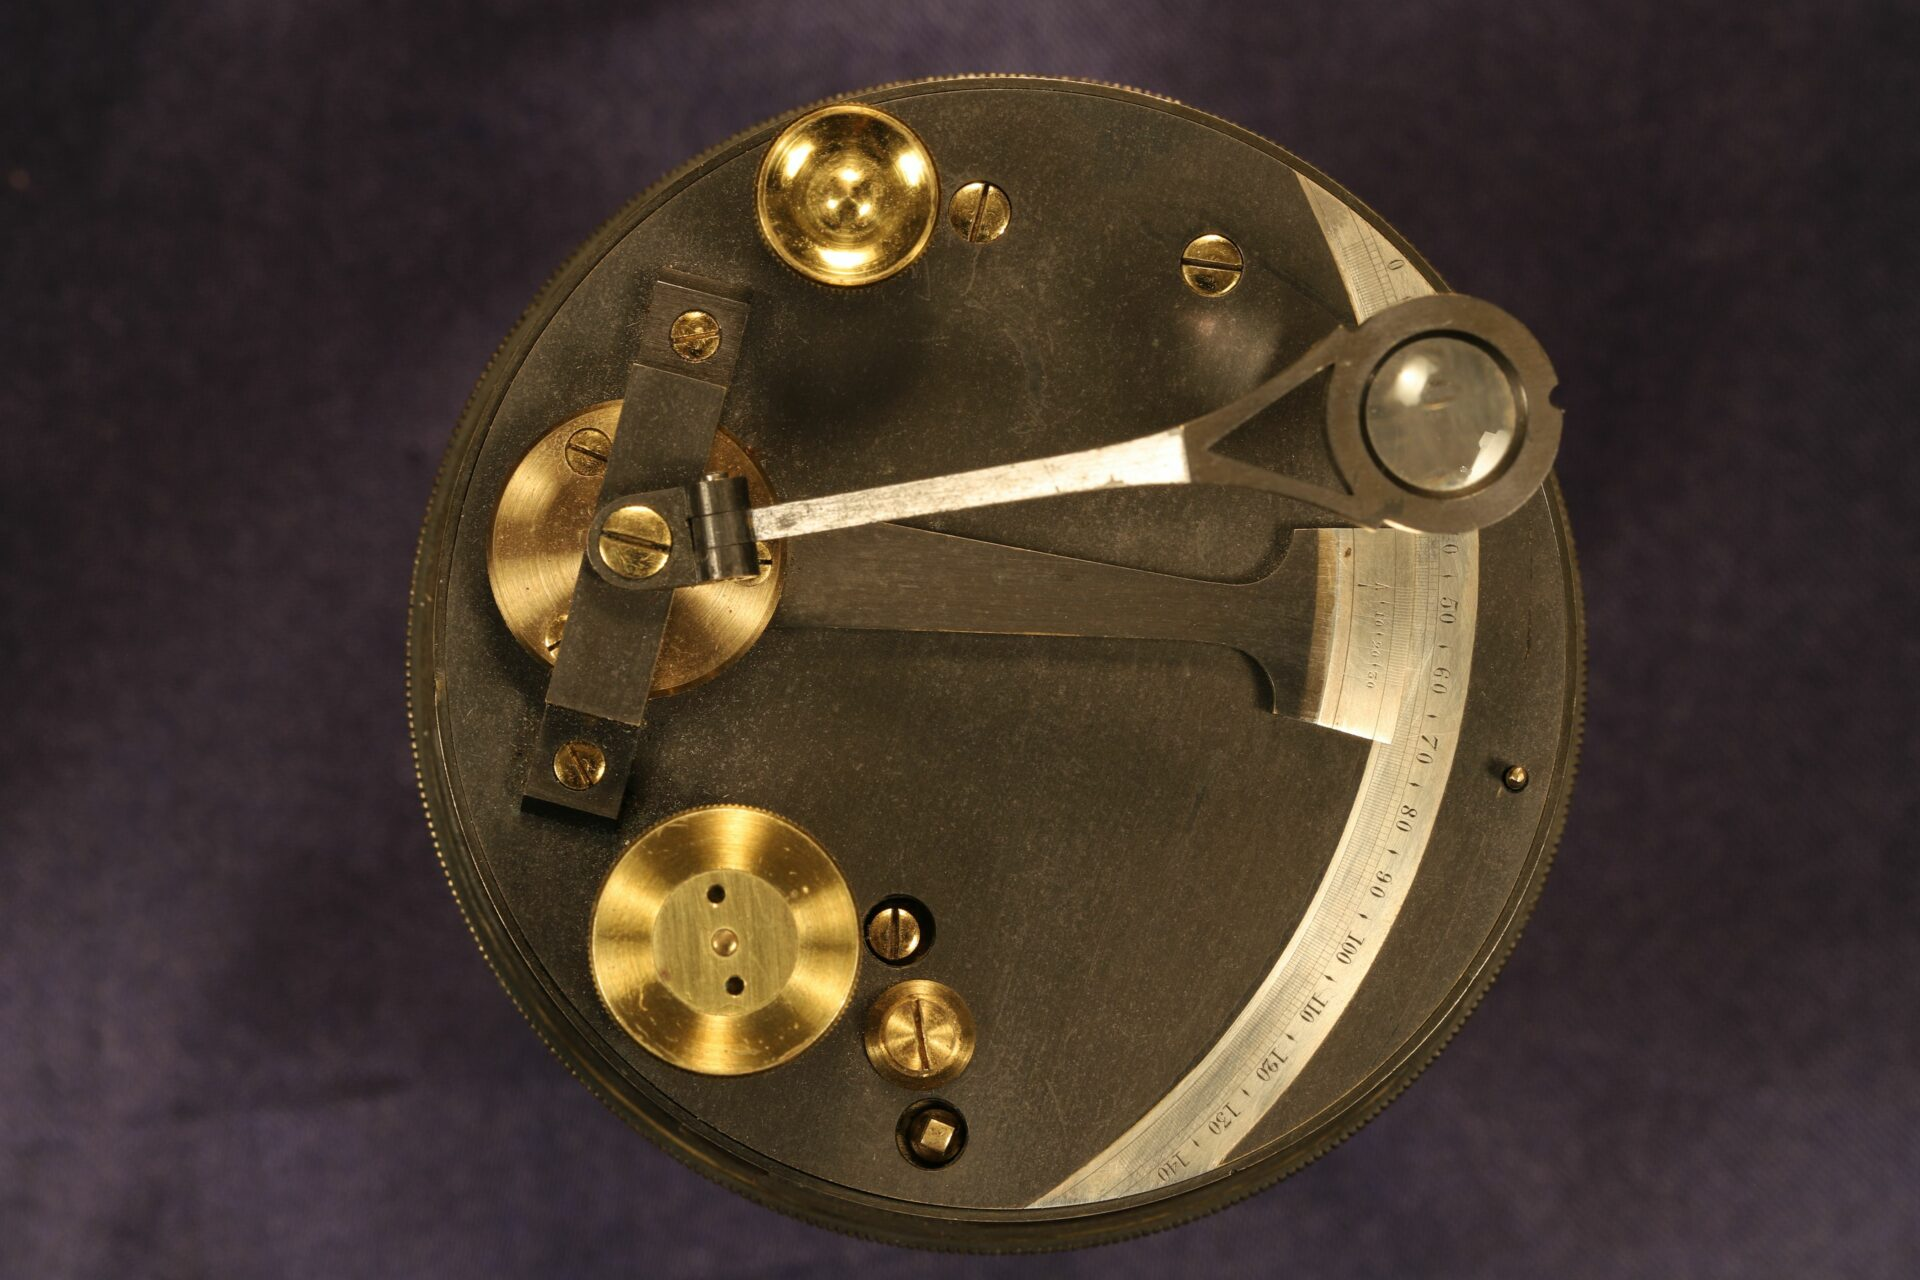 Close up of top of Oxidised Brass Pocket Sextant c1890